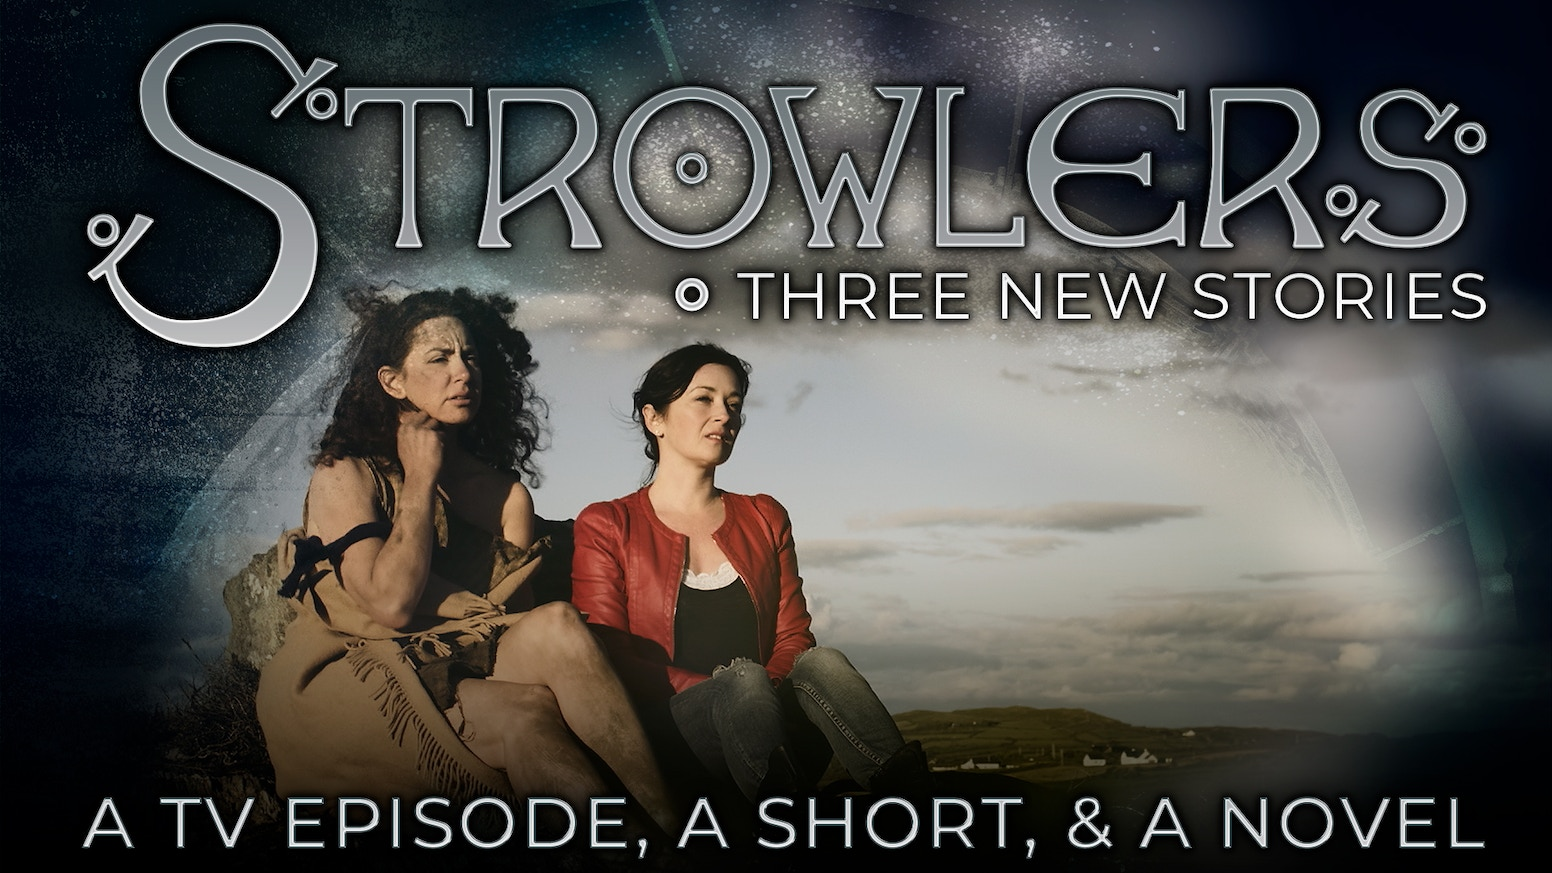 """A modern fantasy TV series. The story begun in """"Strowlers Ireland"""" continues with a short film, an episode set in Denmark, and a novel."""